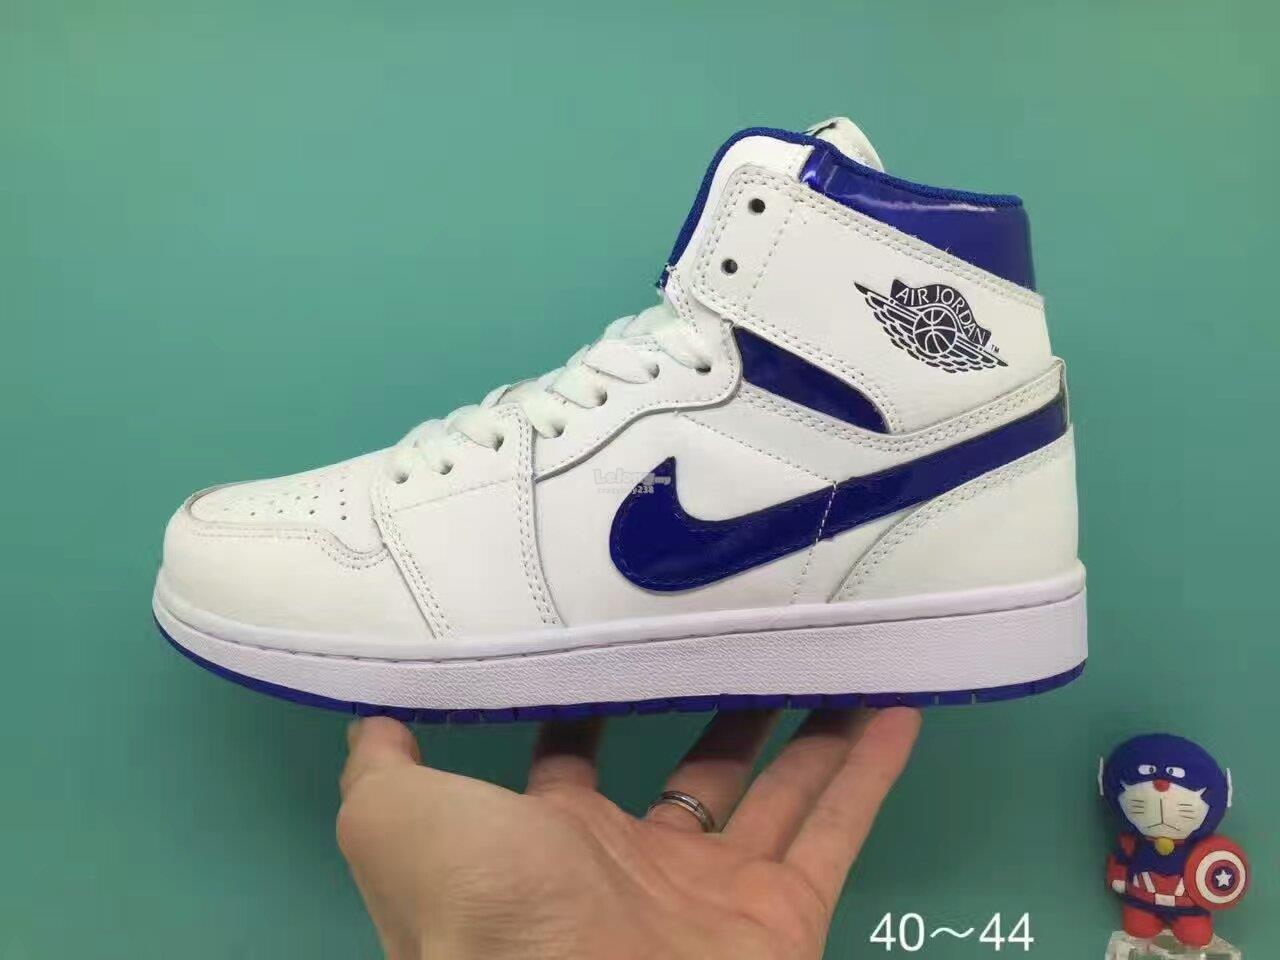 The Nike Air Jordan 1 was Michael Jordan's first signature shoe. Jordan laced up the Air Jordan 1 during his rookie and injury-shortened sophomore season, and then again for his final game at Madison Square Garden as a Bull in